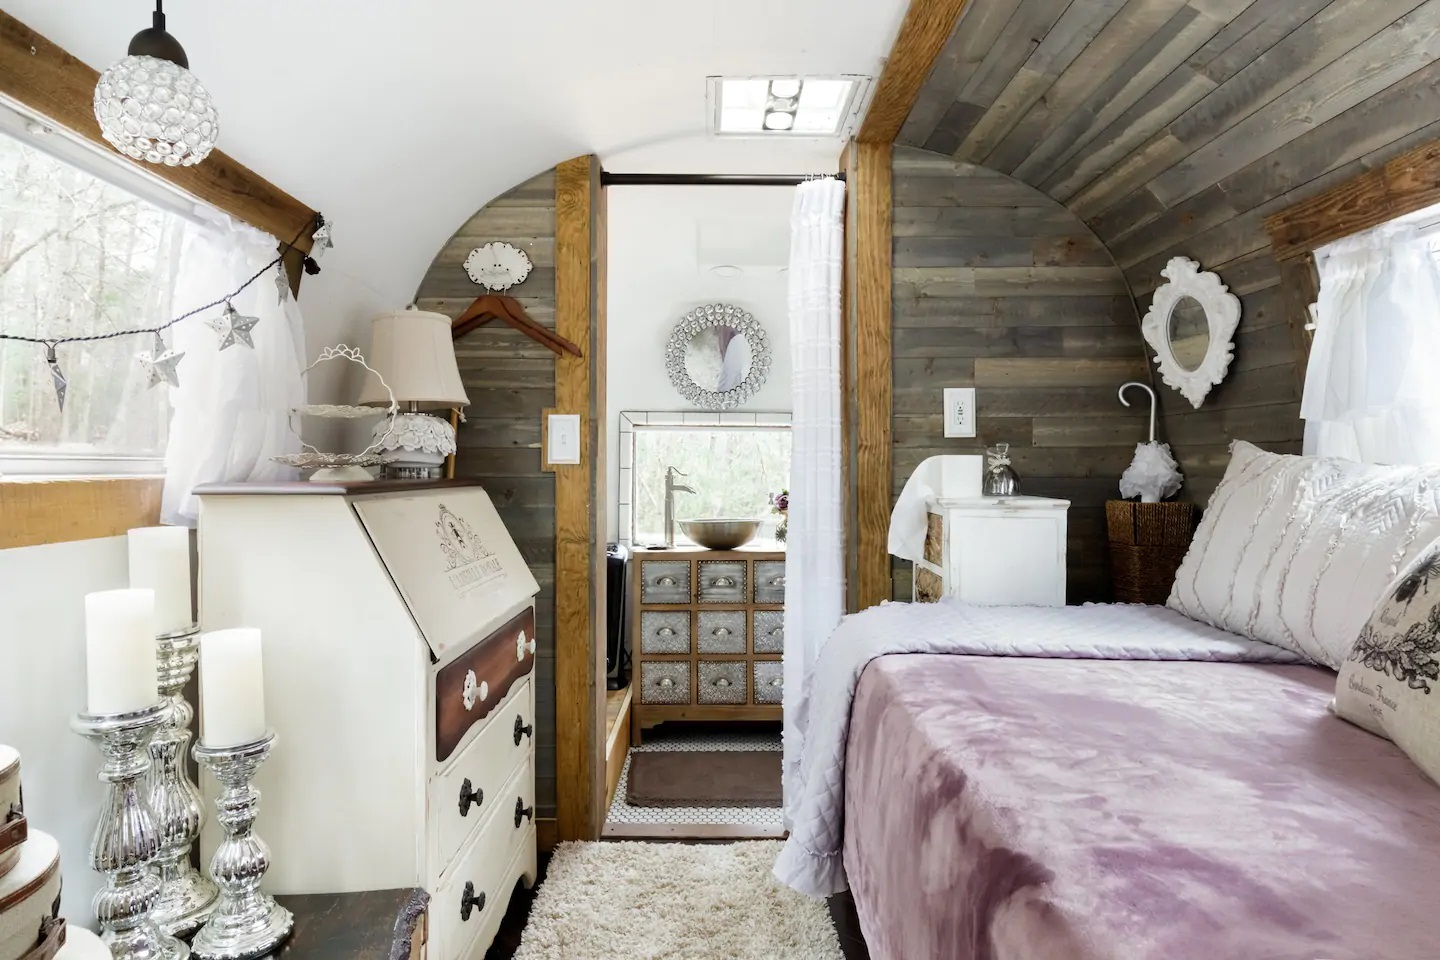 Photo of the Queen Bee Boutique Airstream which is a North Carolina Airbnb.